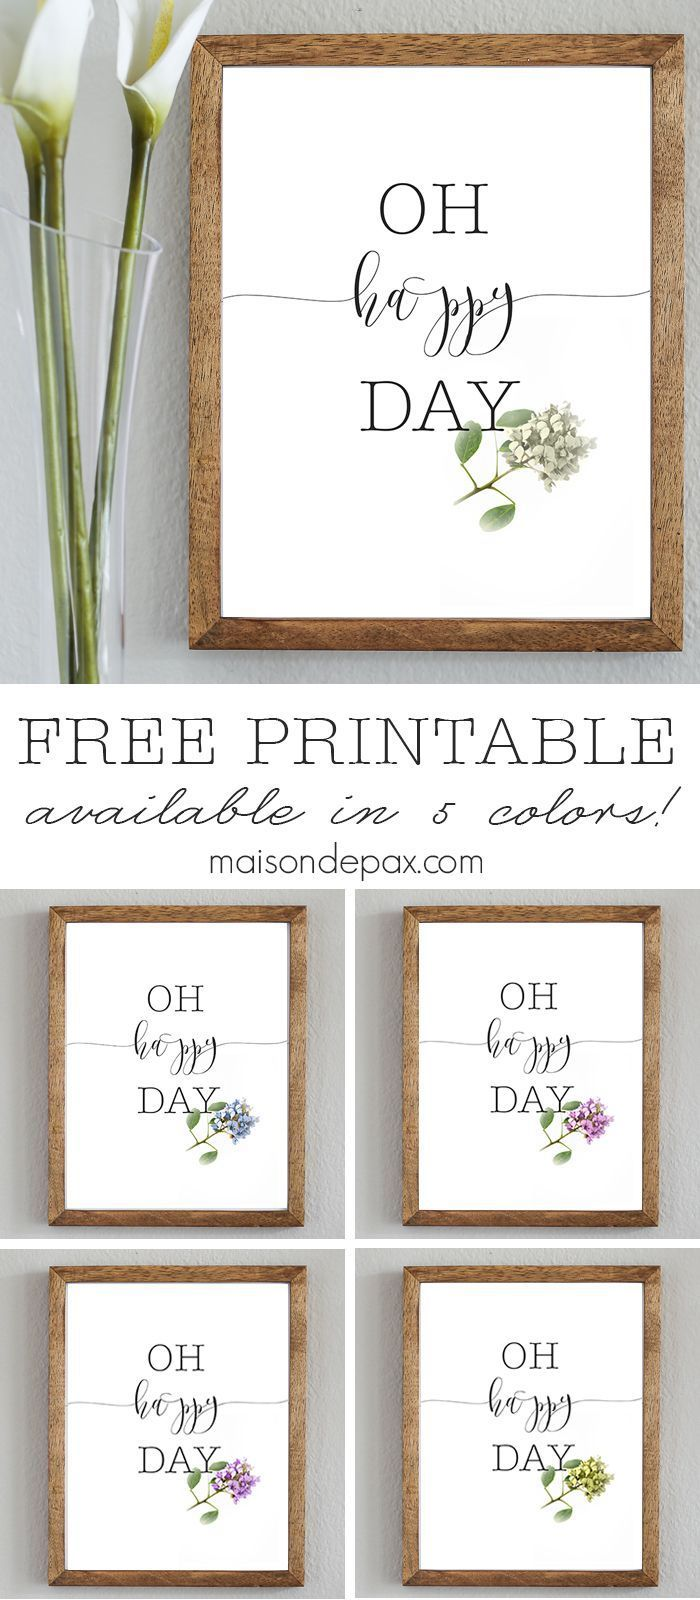 best 25 happy spring day images ideas on pinterest kid photos